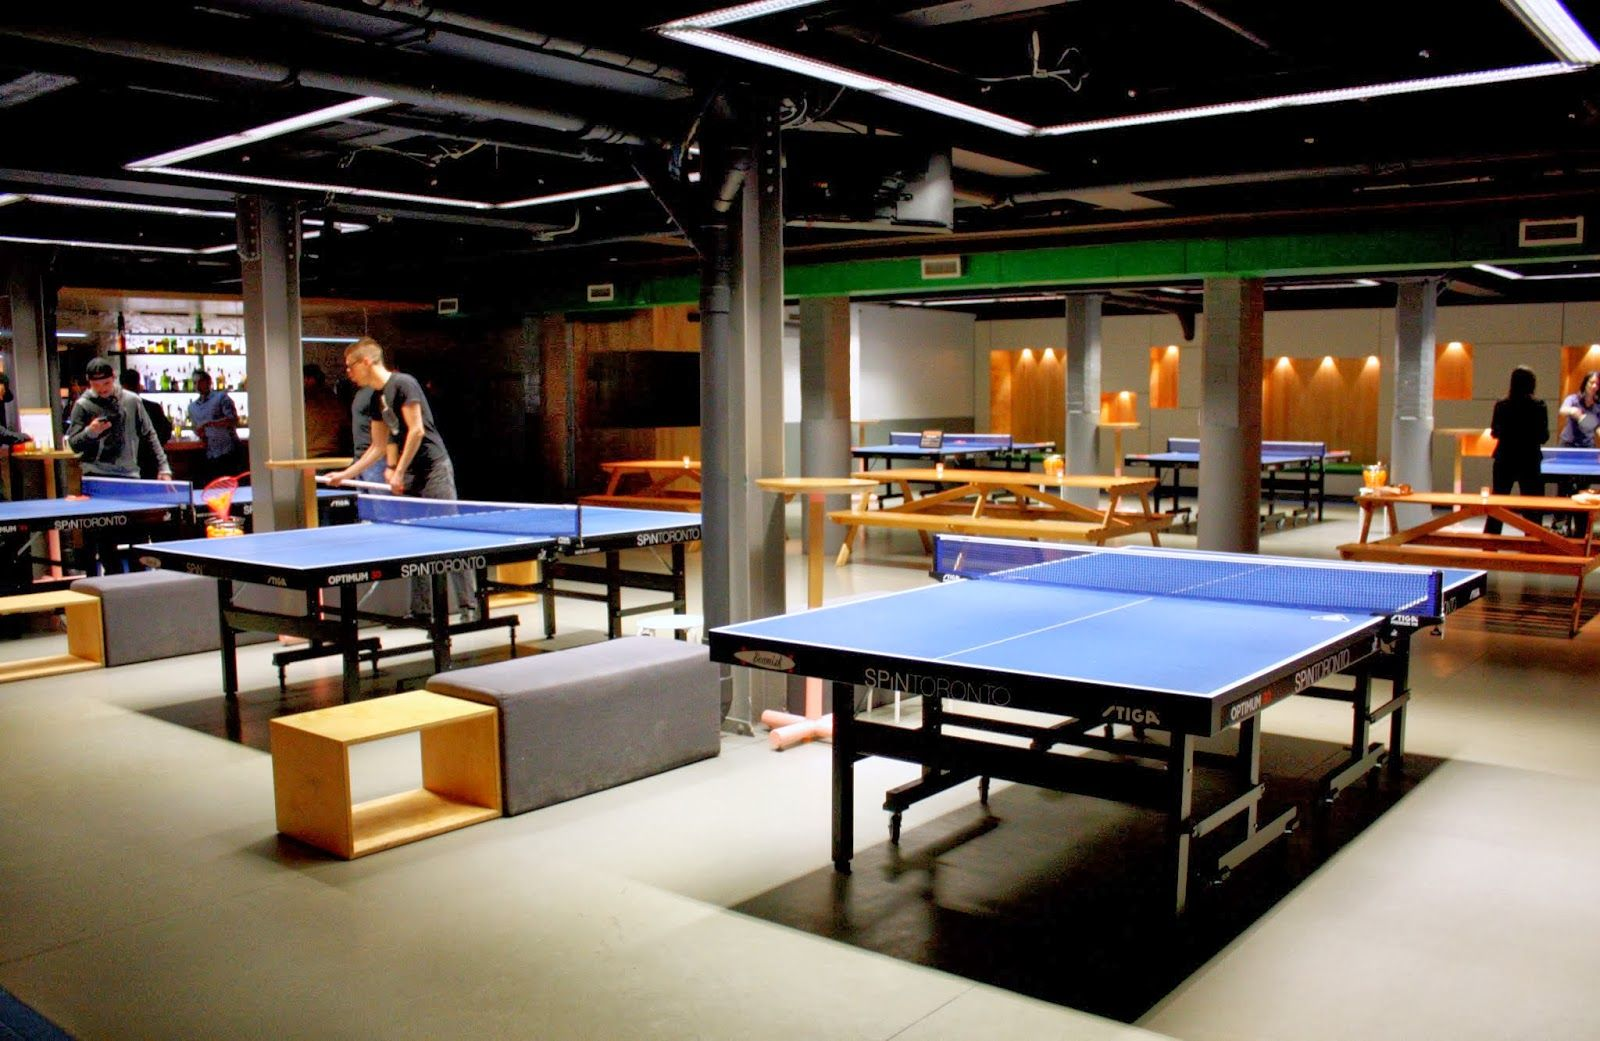 Pin By Nilza Paula Ferreira Fernandes On Interior Ref Stadium Sports Training Ping Pong Ping Pong Bar Furniture Layout